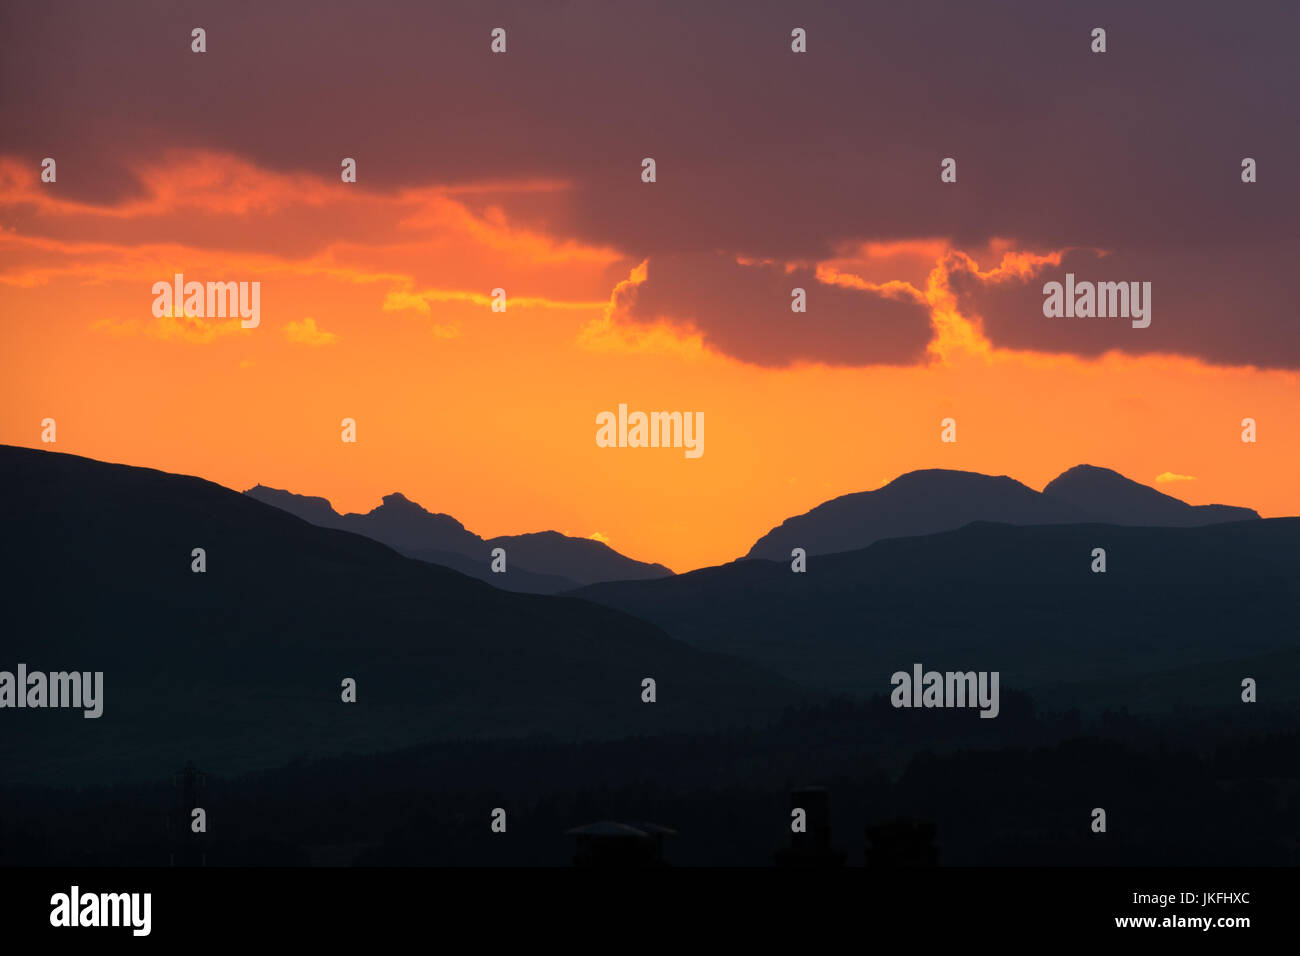 Southern Highlands, Scotland, UK - 23 July 2017: UK weather - beautiful orange sunset over the Southern Highlands - Stock Image